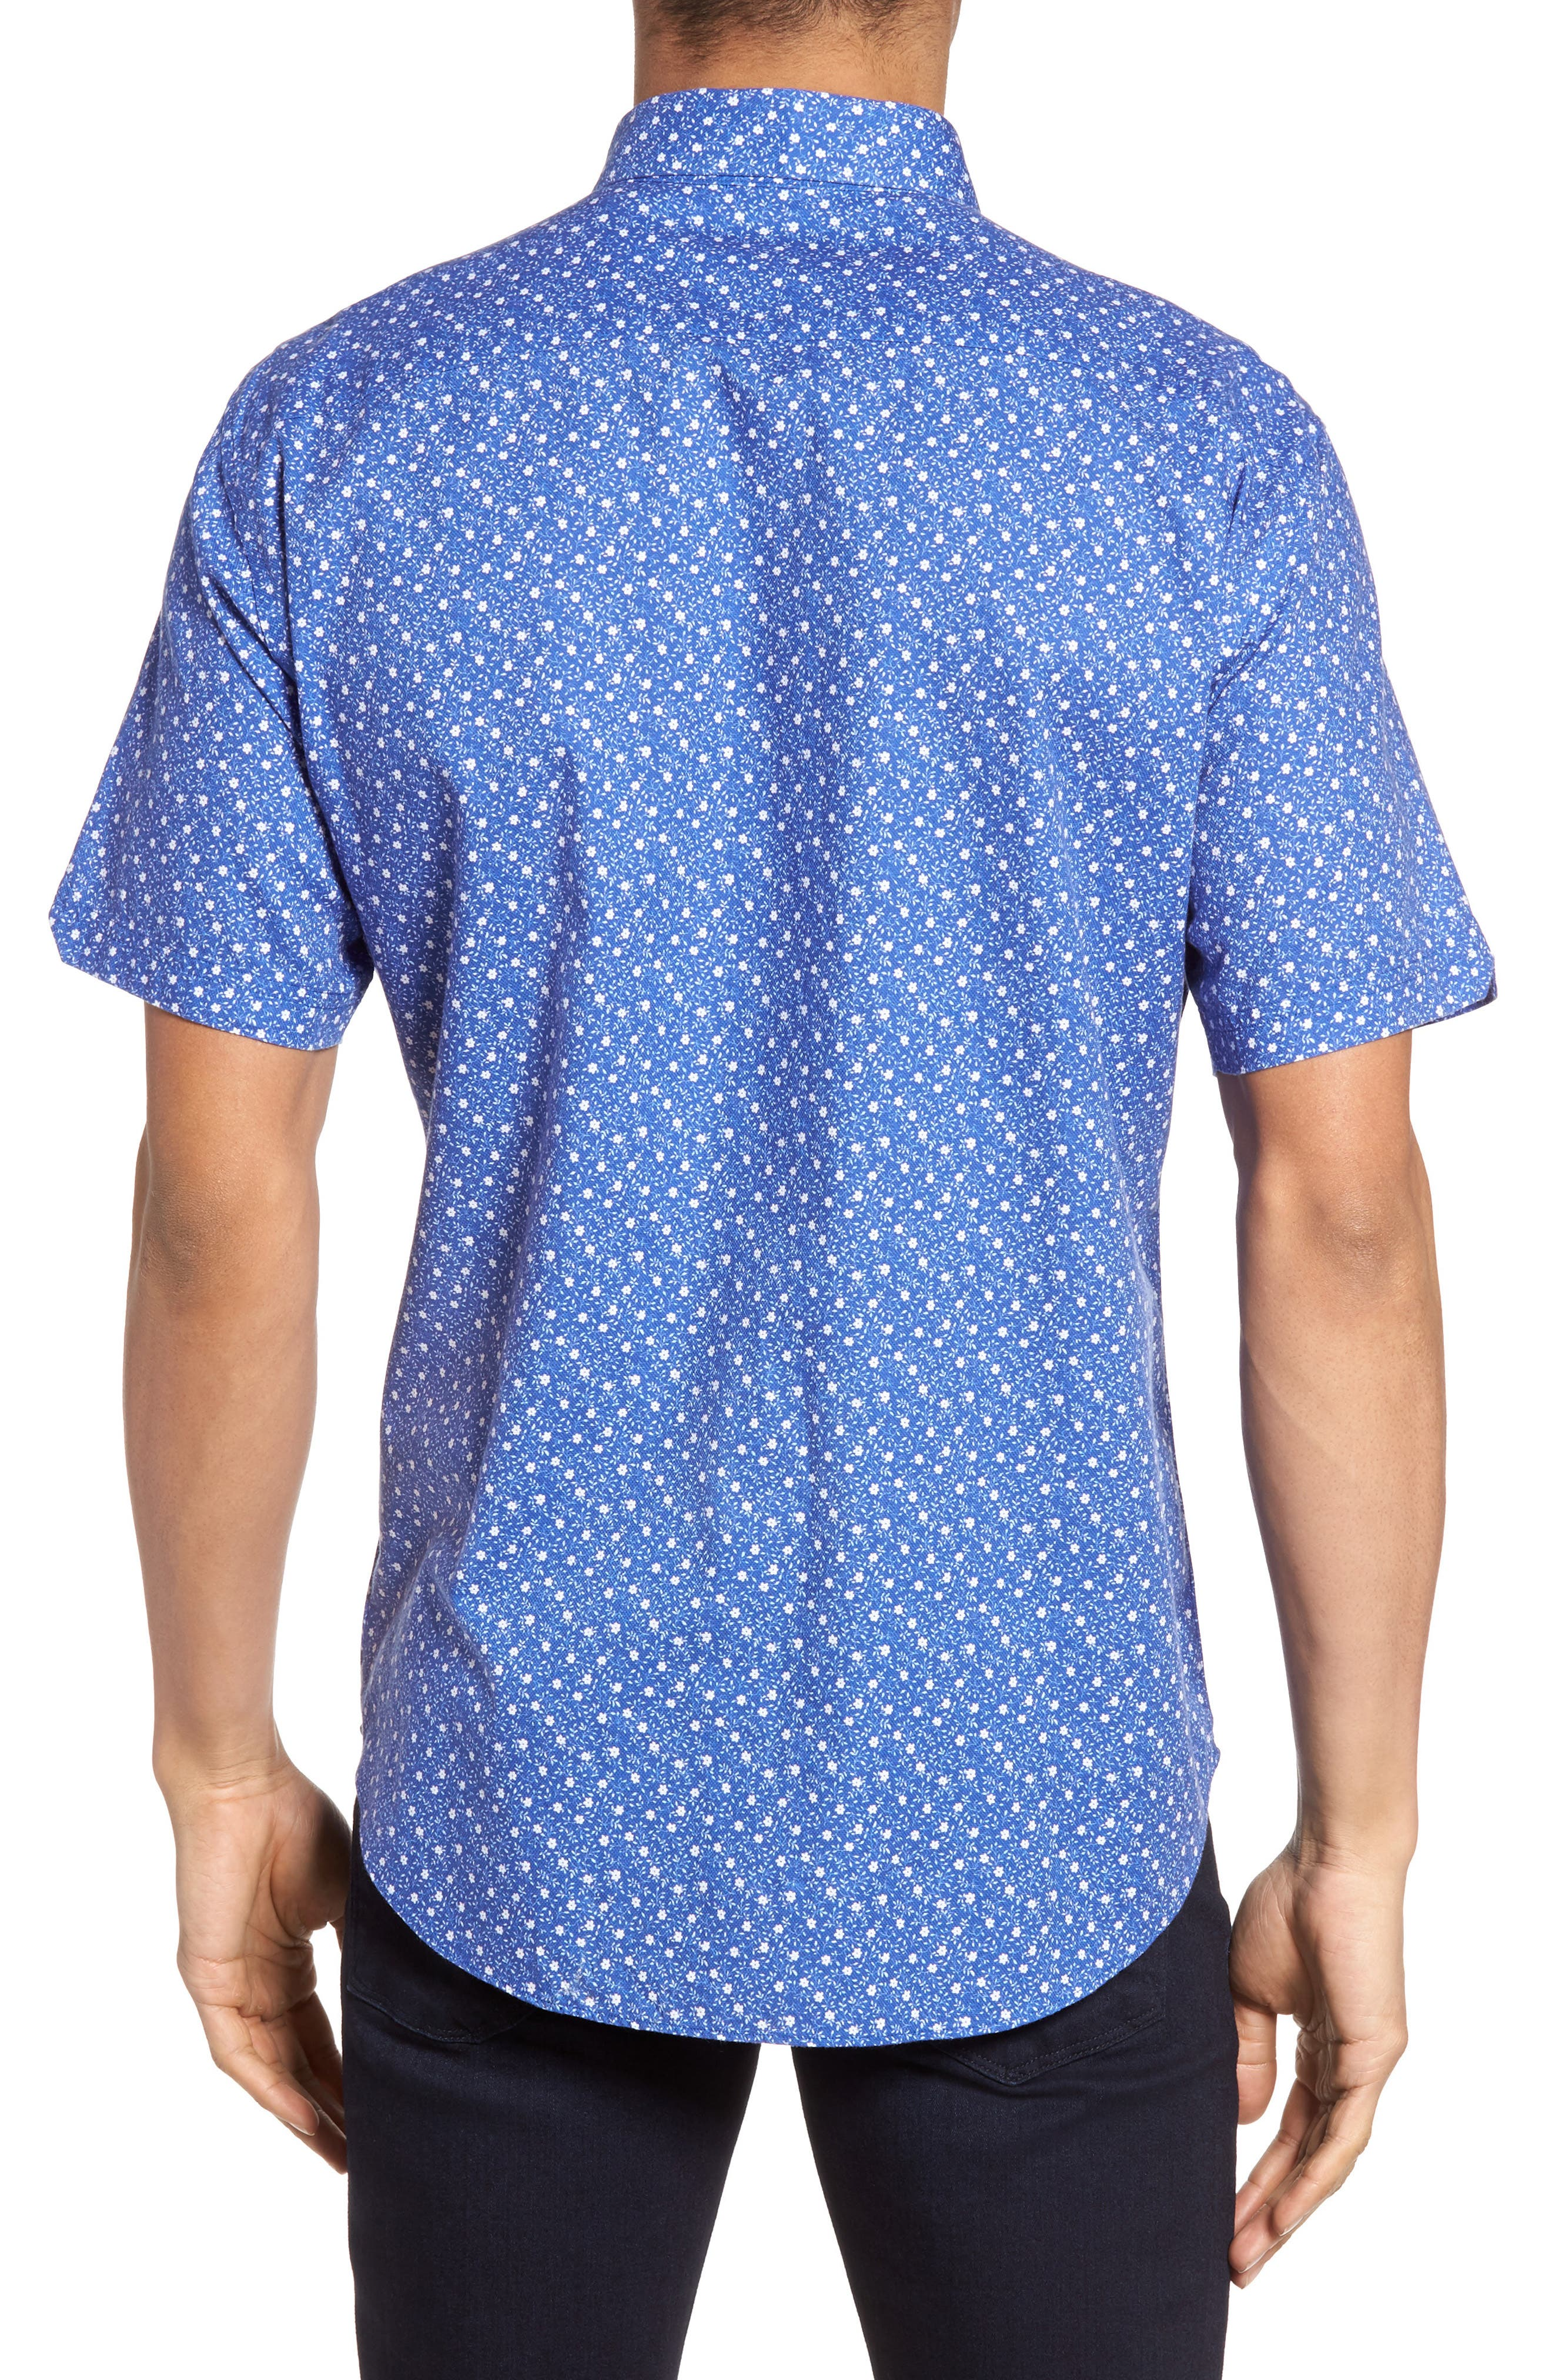 Rashid Print Sport Shirt,                             Alternate thumbnail 2, color,                             408